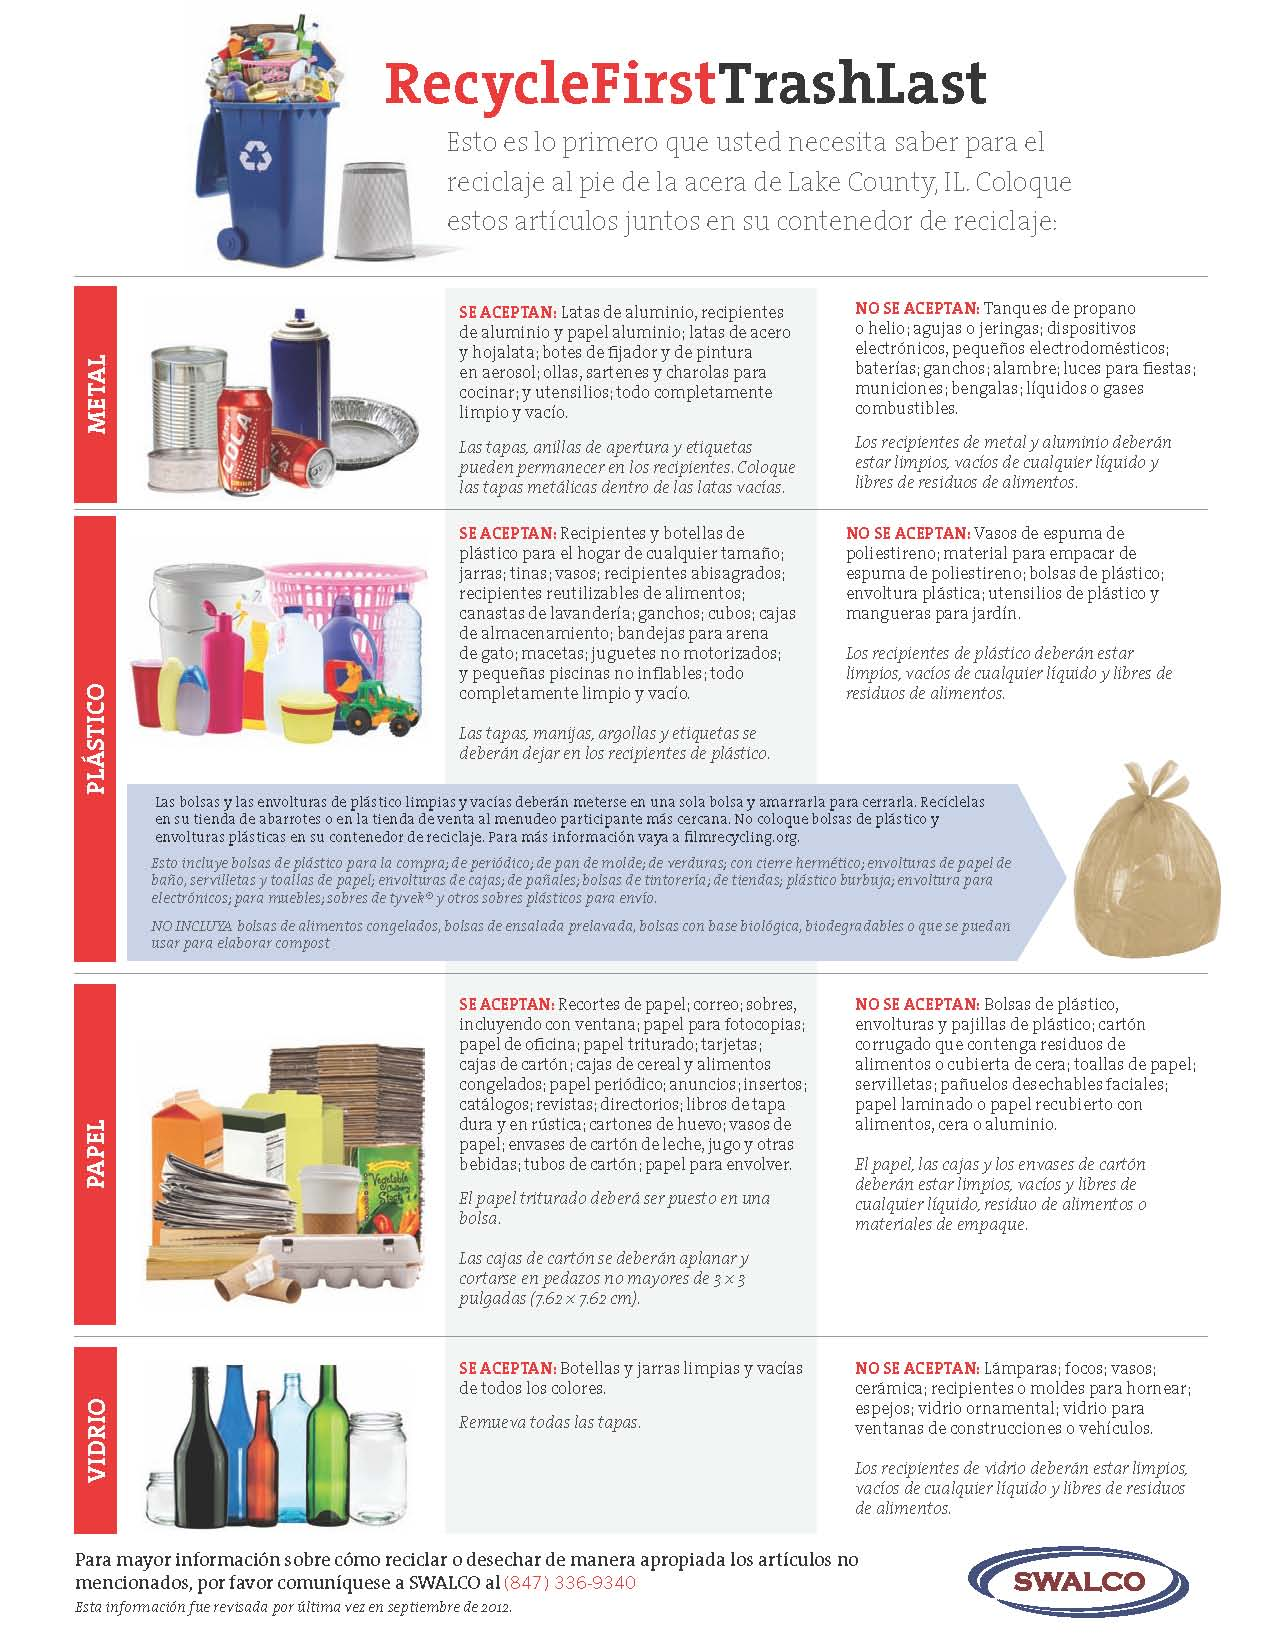 RecycleFirst.TrashLast_ Guidelines Spanish NO org 01.16.18